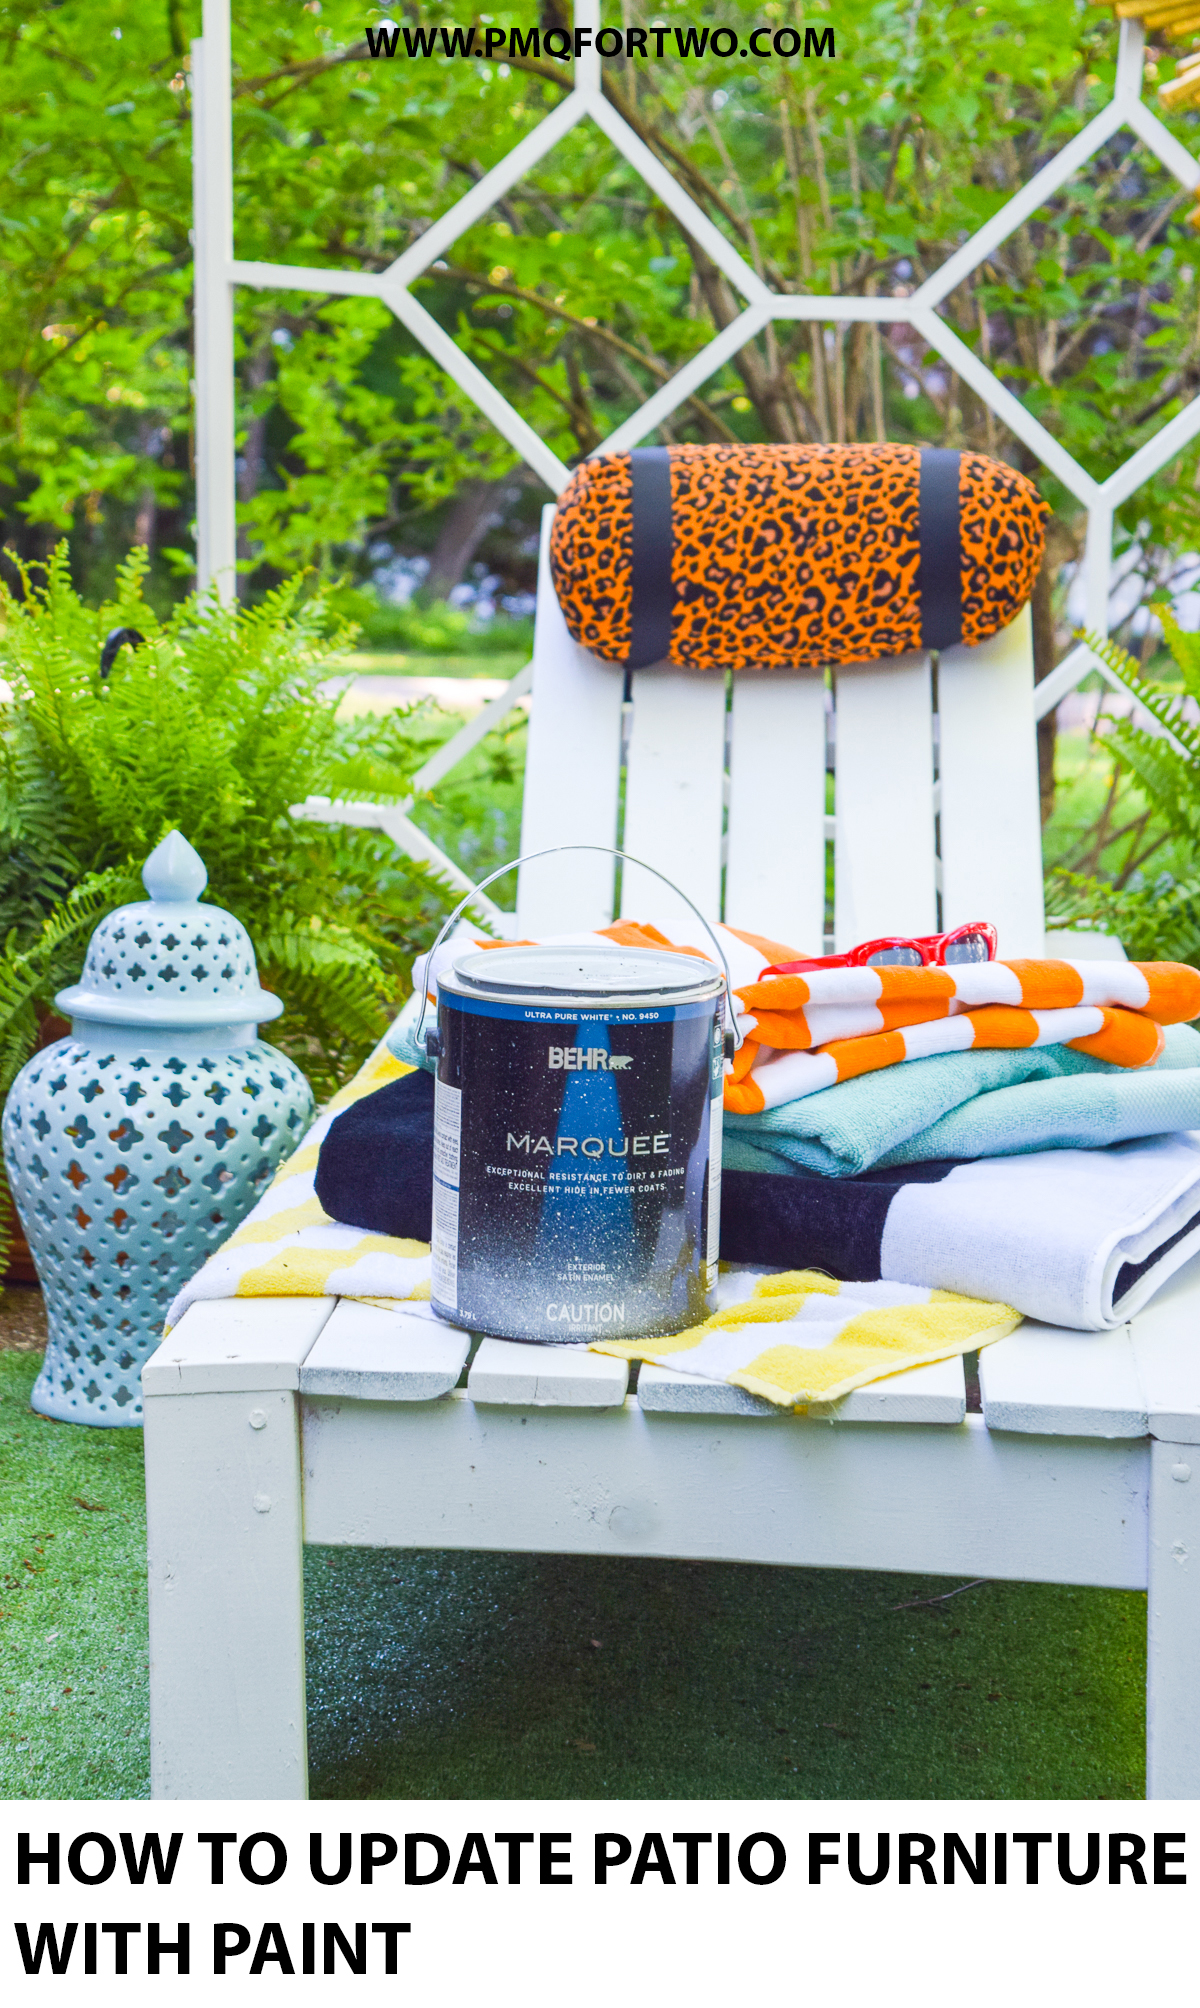 Is your outdoor set looking a little tired? I've got a few DIYs that show you How to update Patio Furniture With Paint, and it's easier than you'd think! You just need the right BEHR paint product.